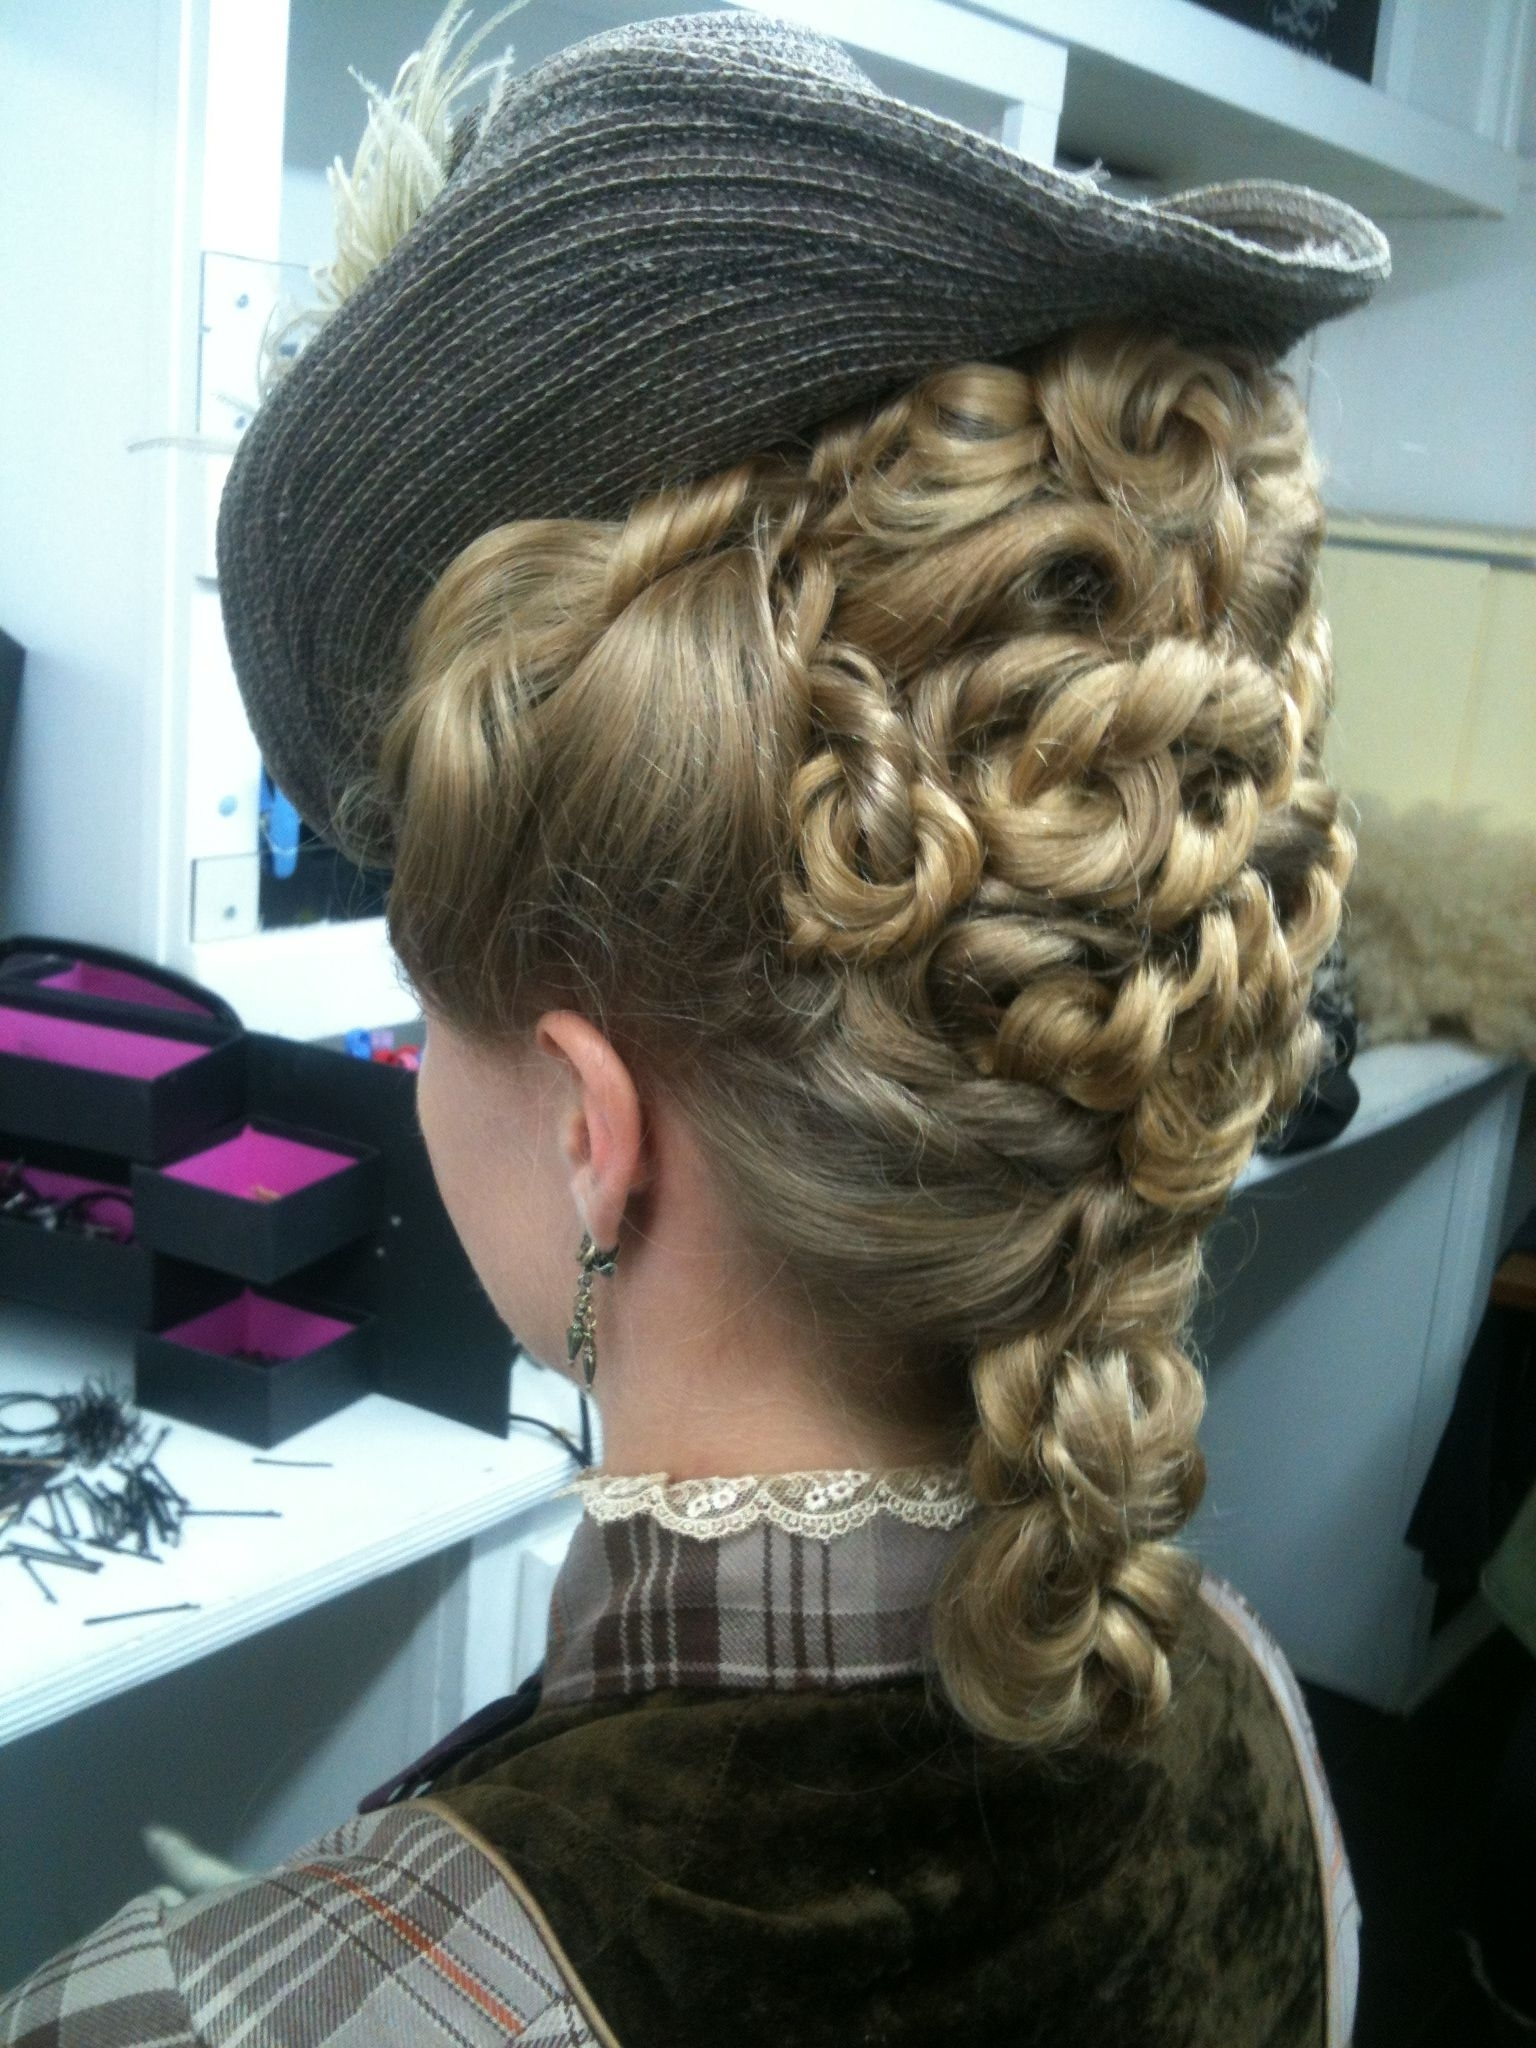 Favorite Braided Victorian Hairstyles With When Sybil Gets To Wear Fetching Little Hats Instead Of Dreary (View 4 of 15)